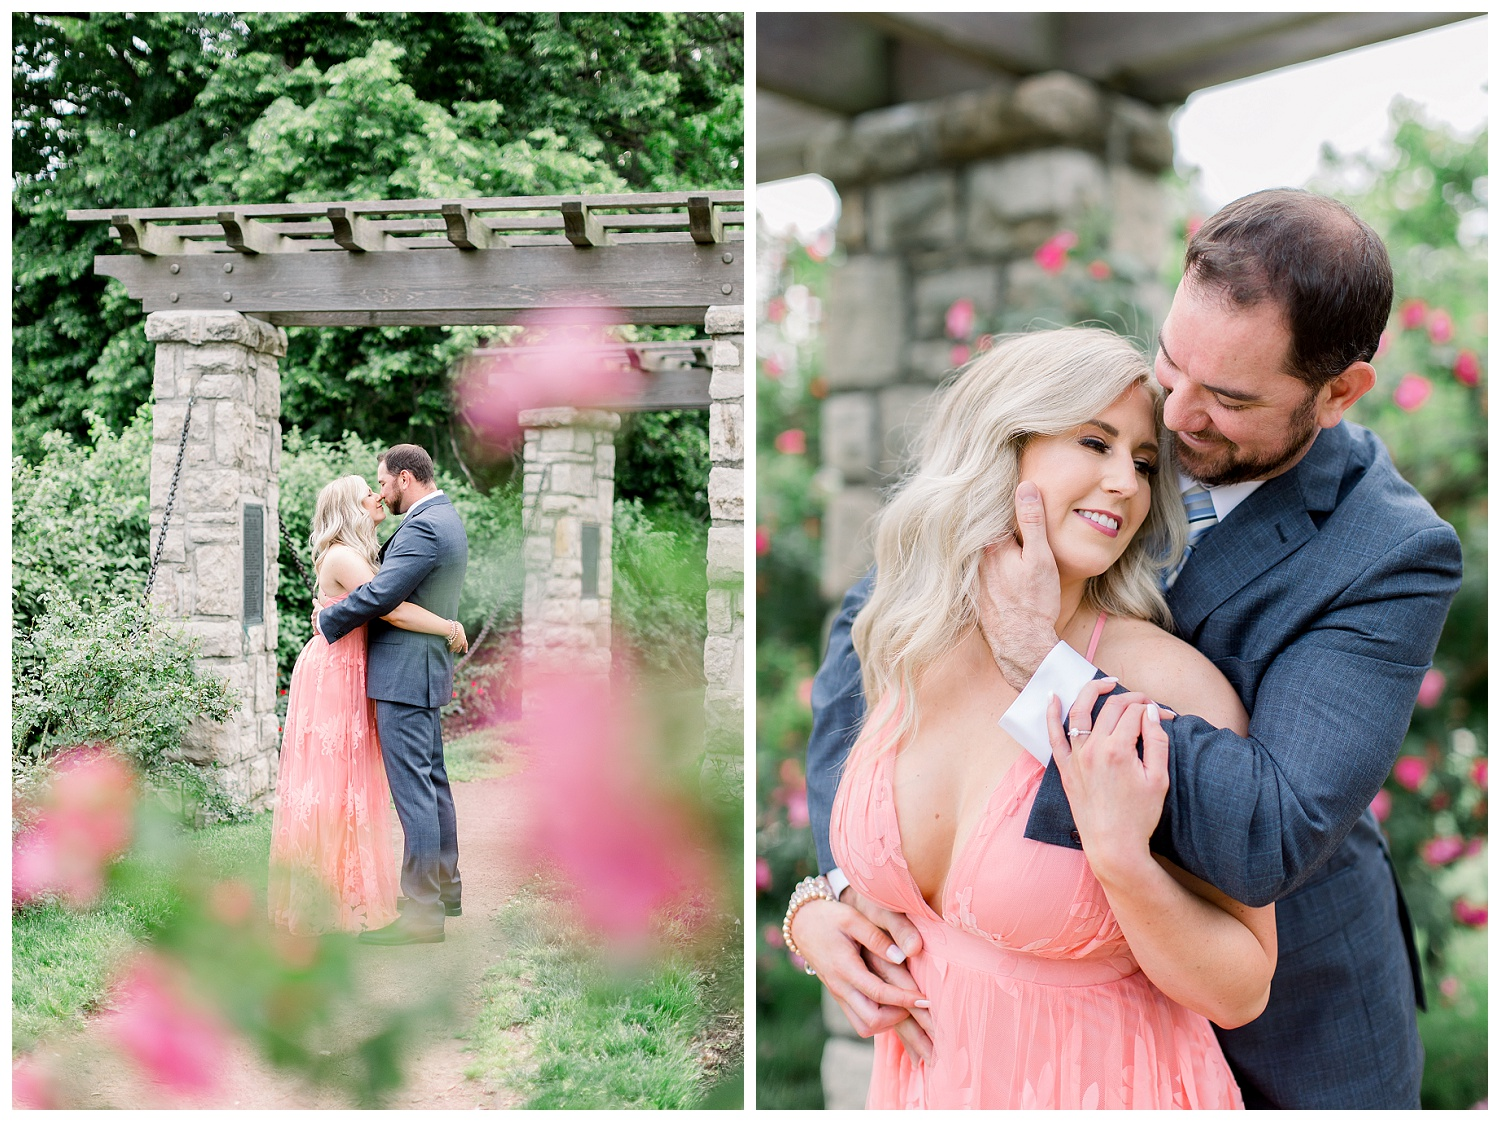 Engagement photography at Loose Park Rose Garden